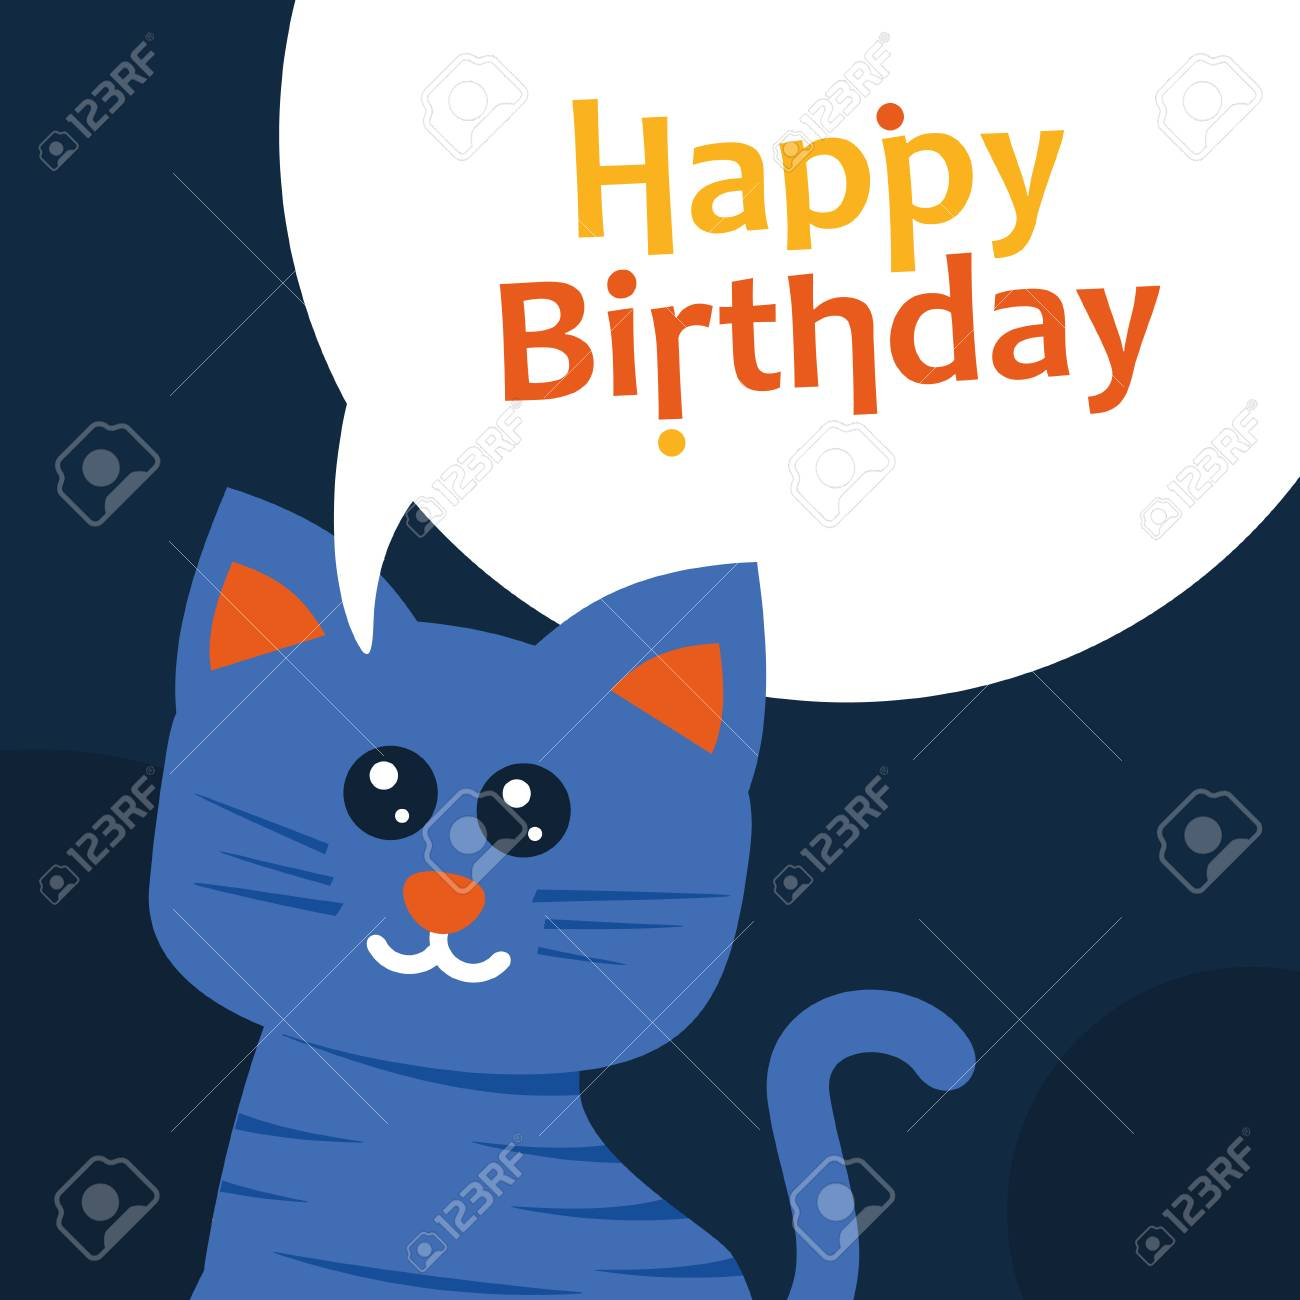 Happy Birthday Greeting Card Cat Flat Design Stock Vector